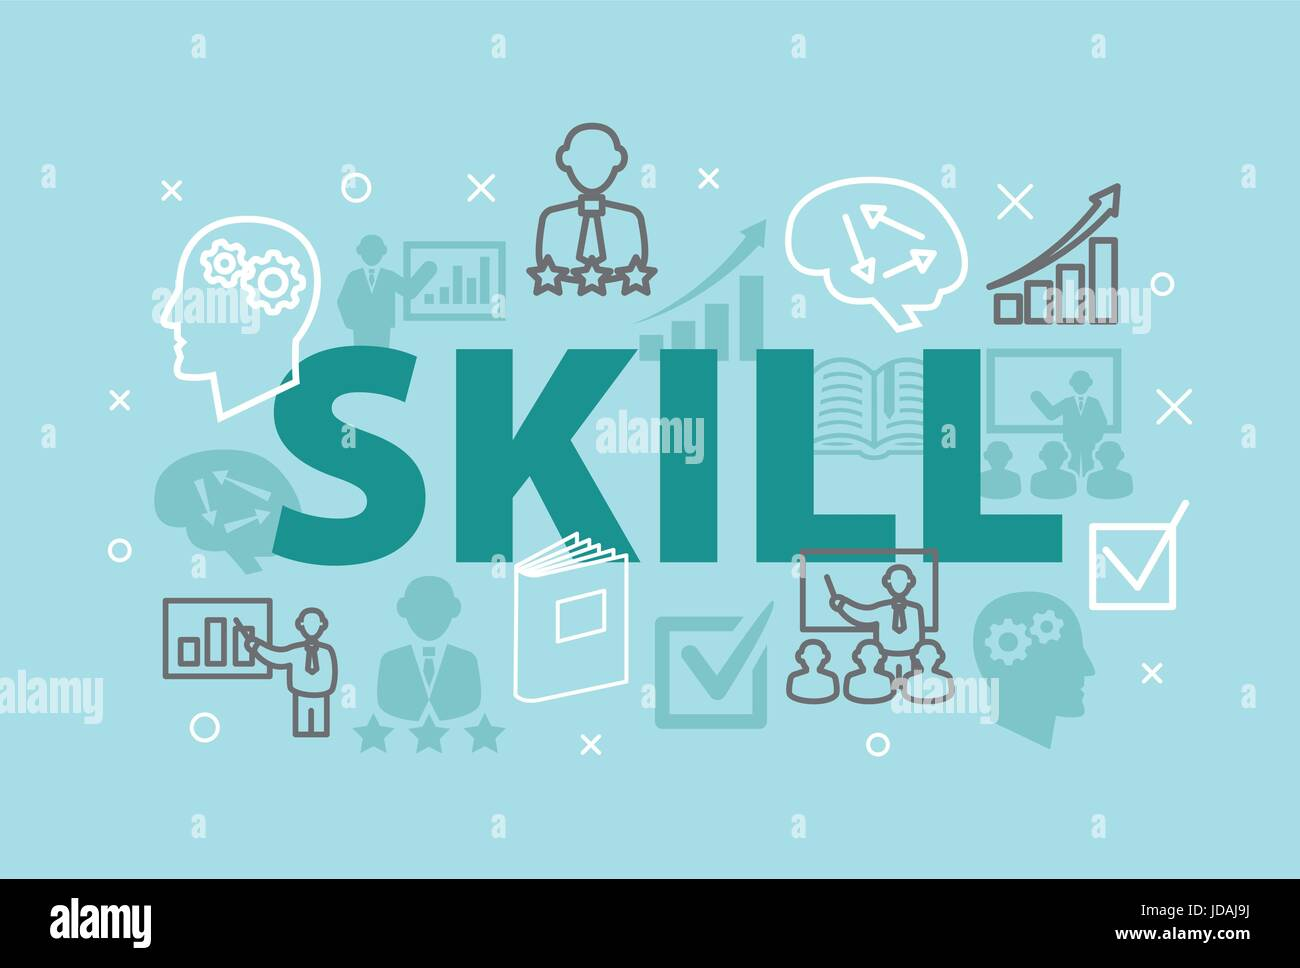 SKILL Concept with icons and signs - Stock Image